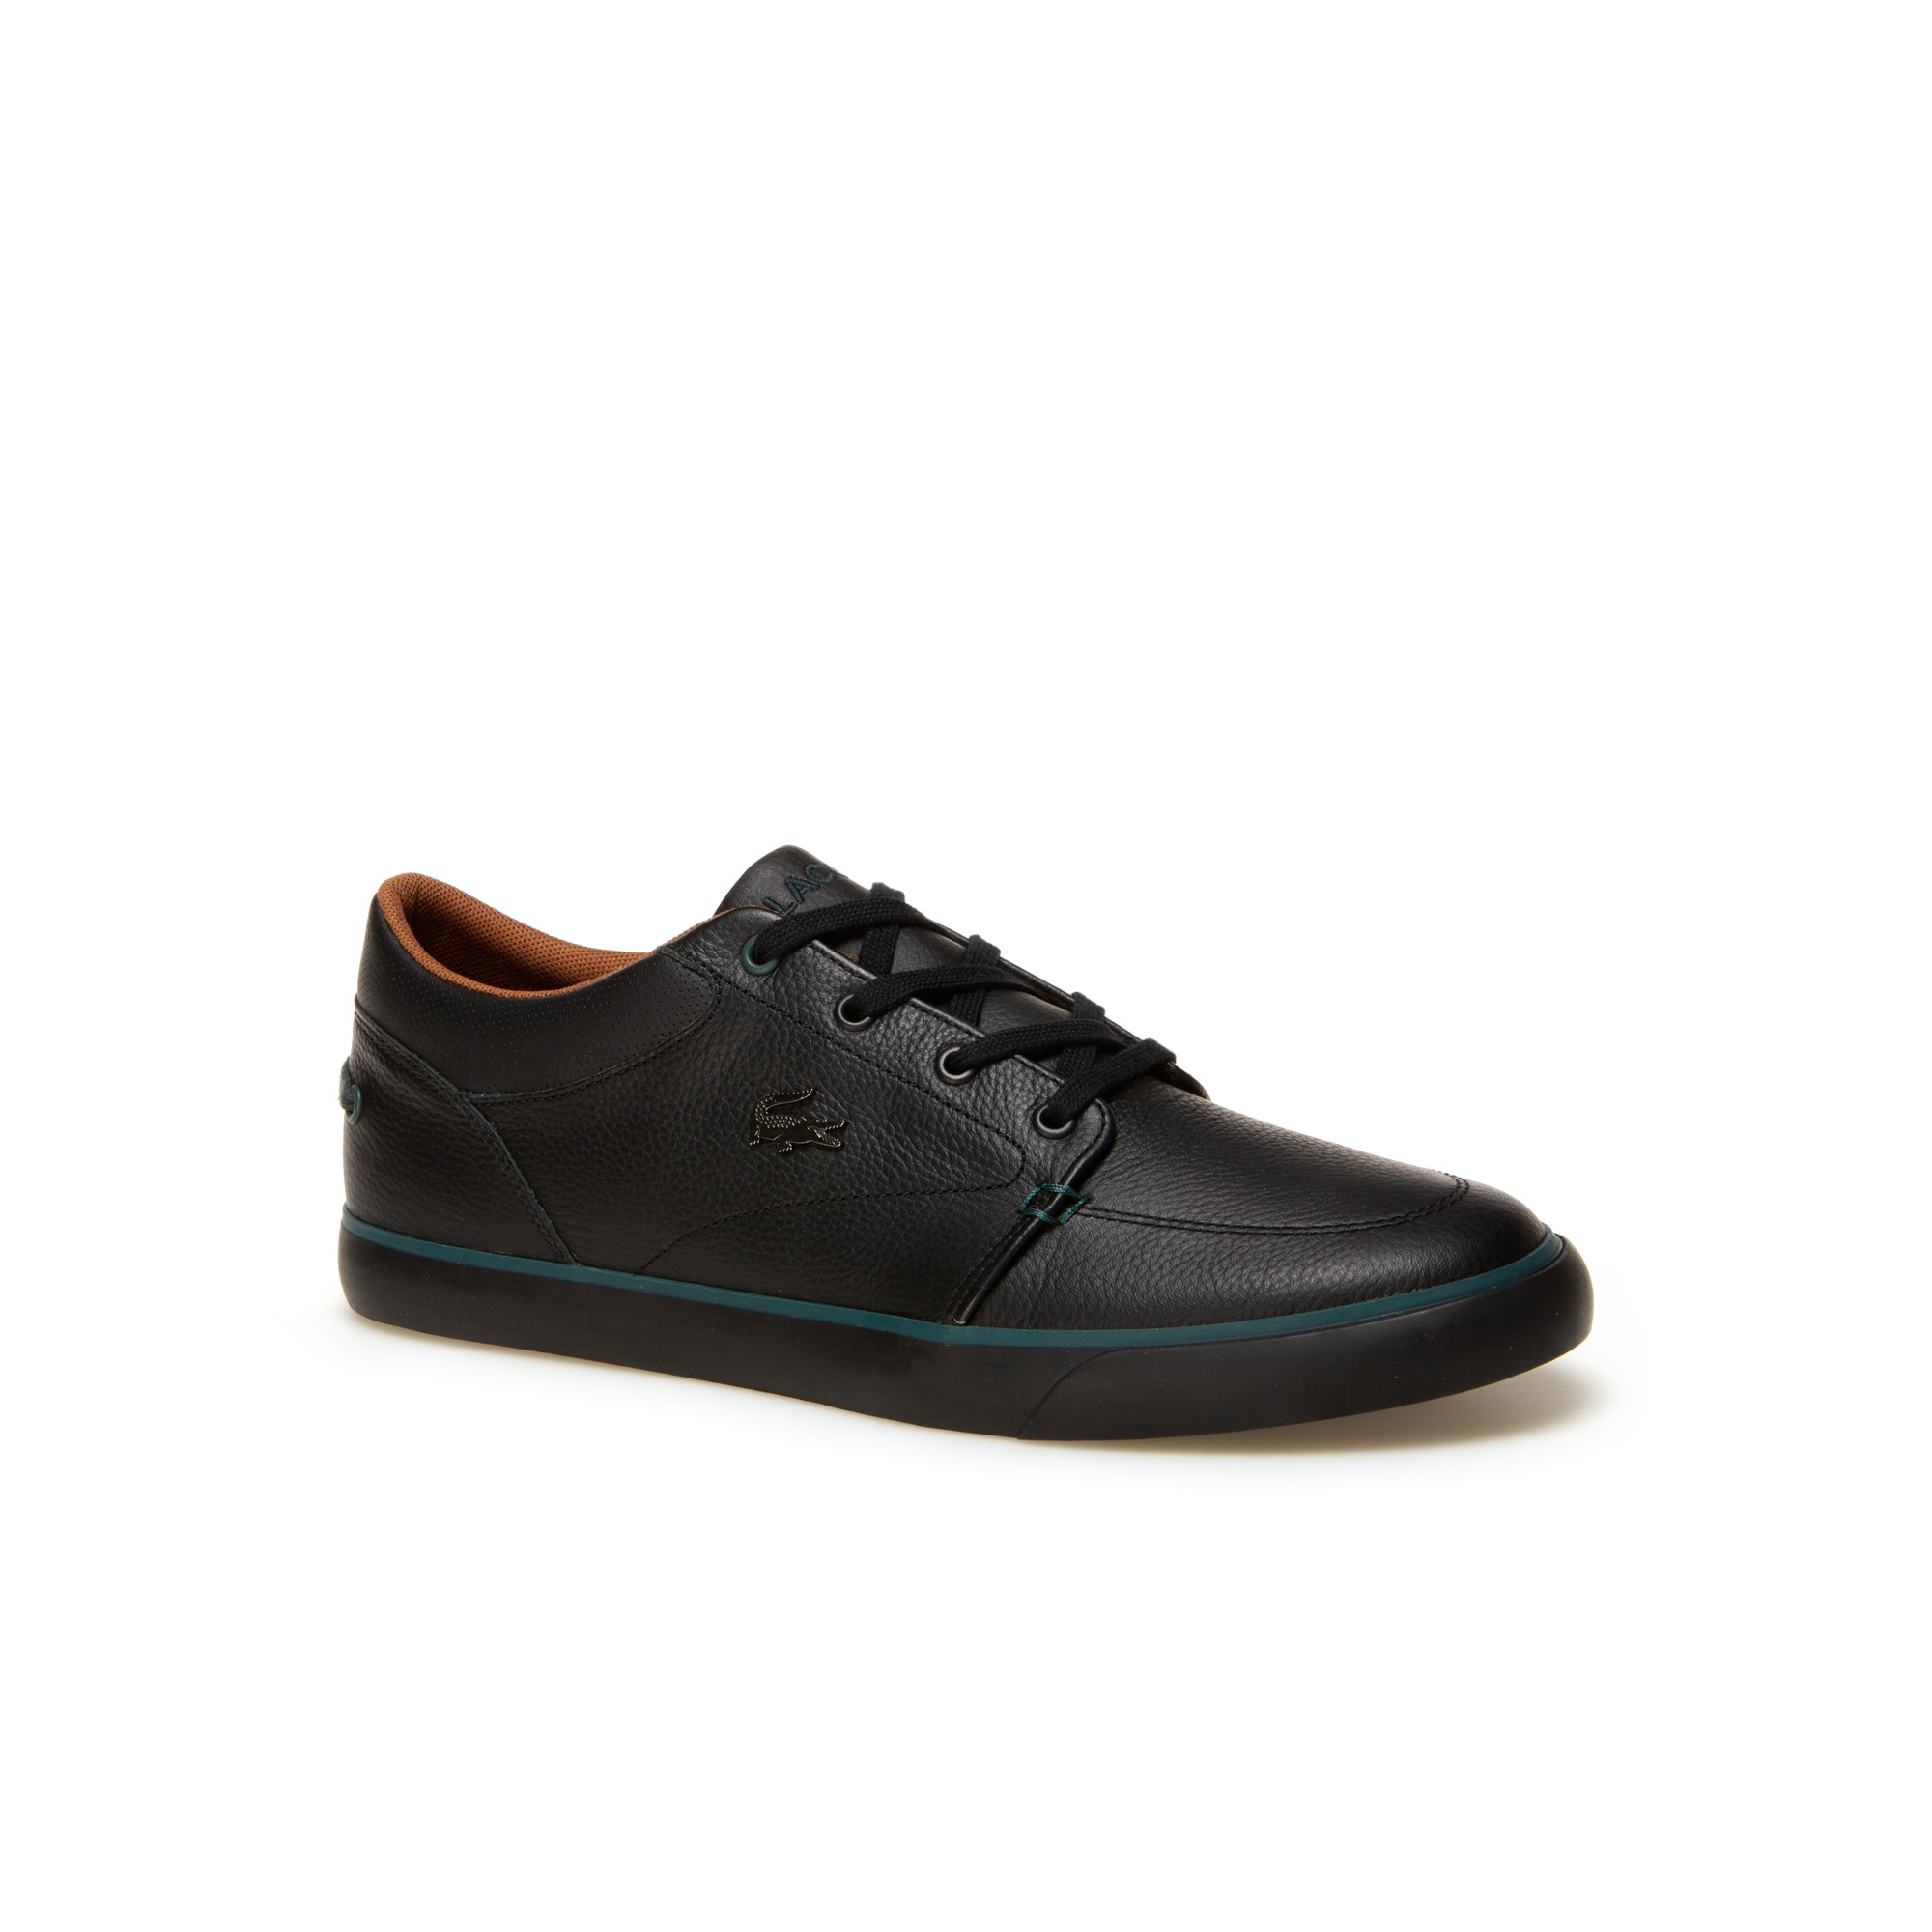 Sneakers Bayliss Vulc en cuir